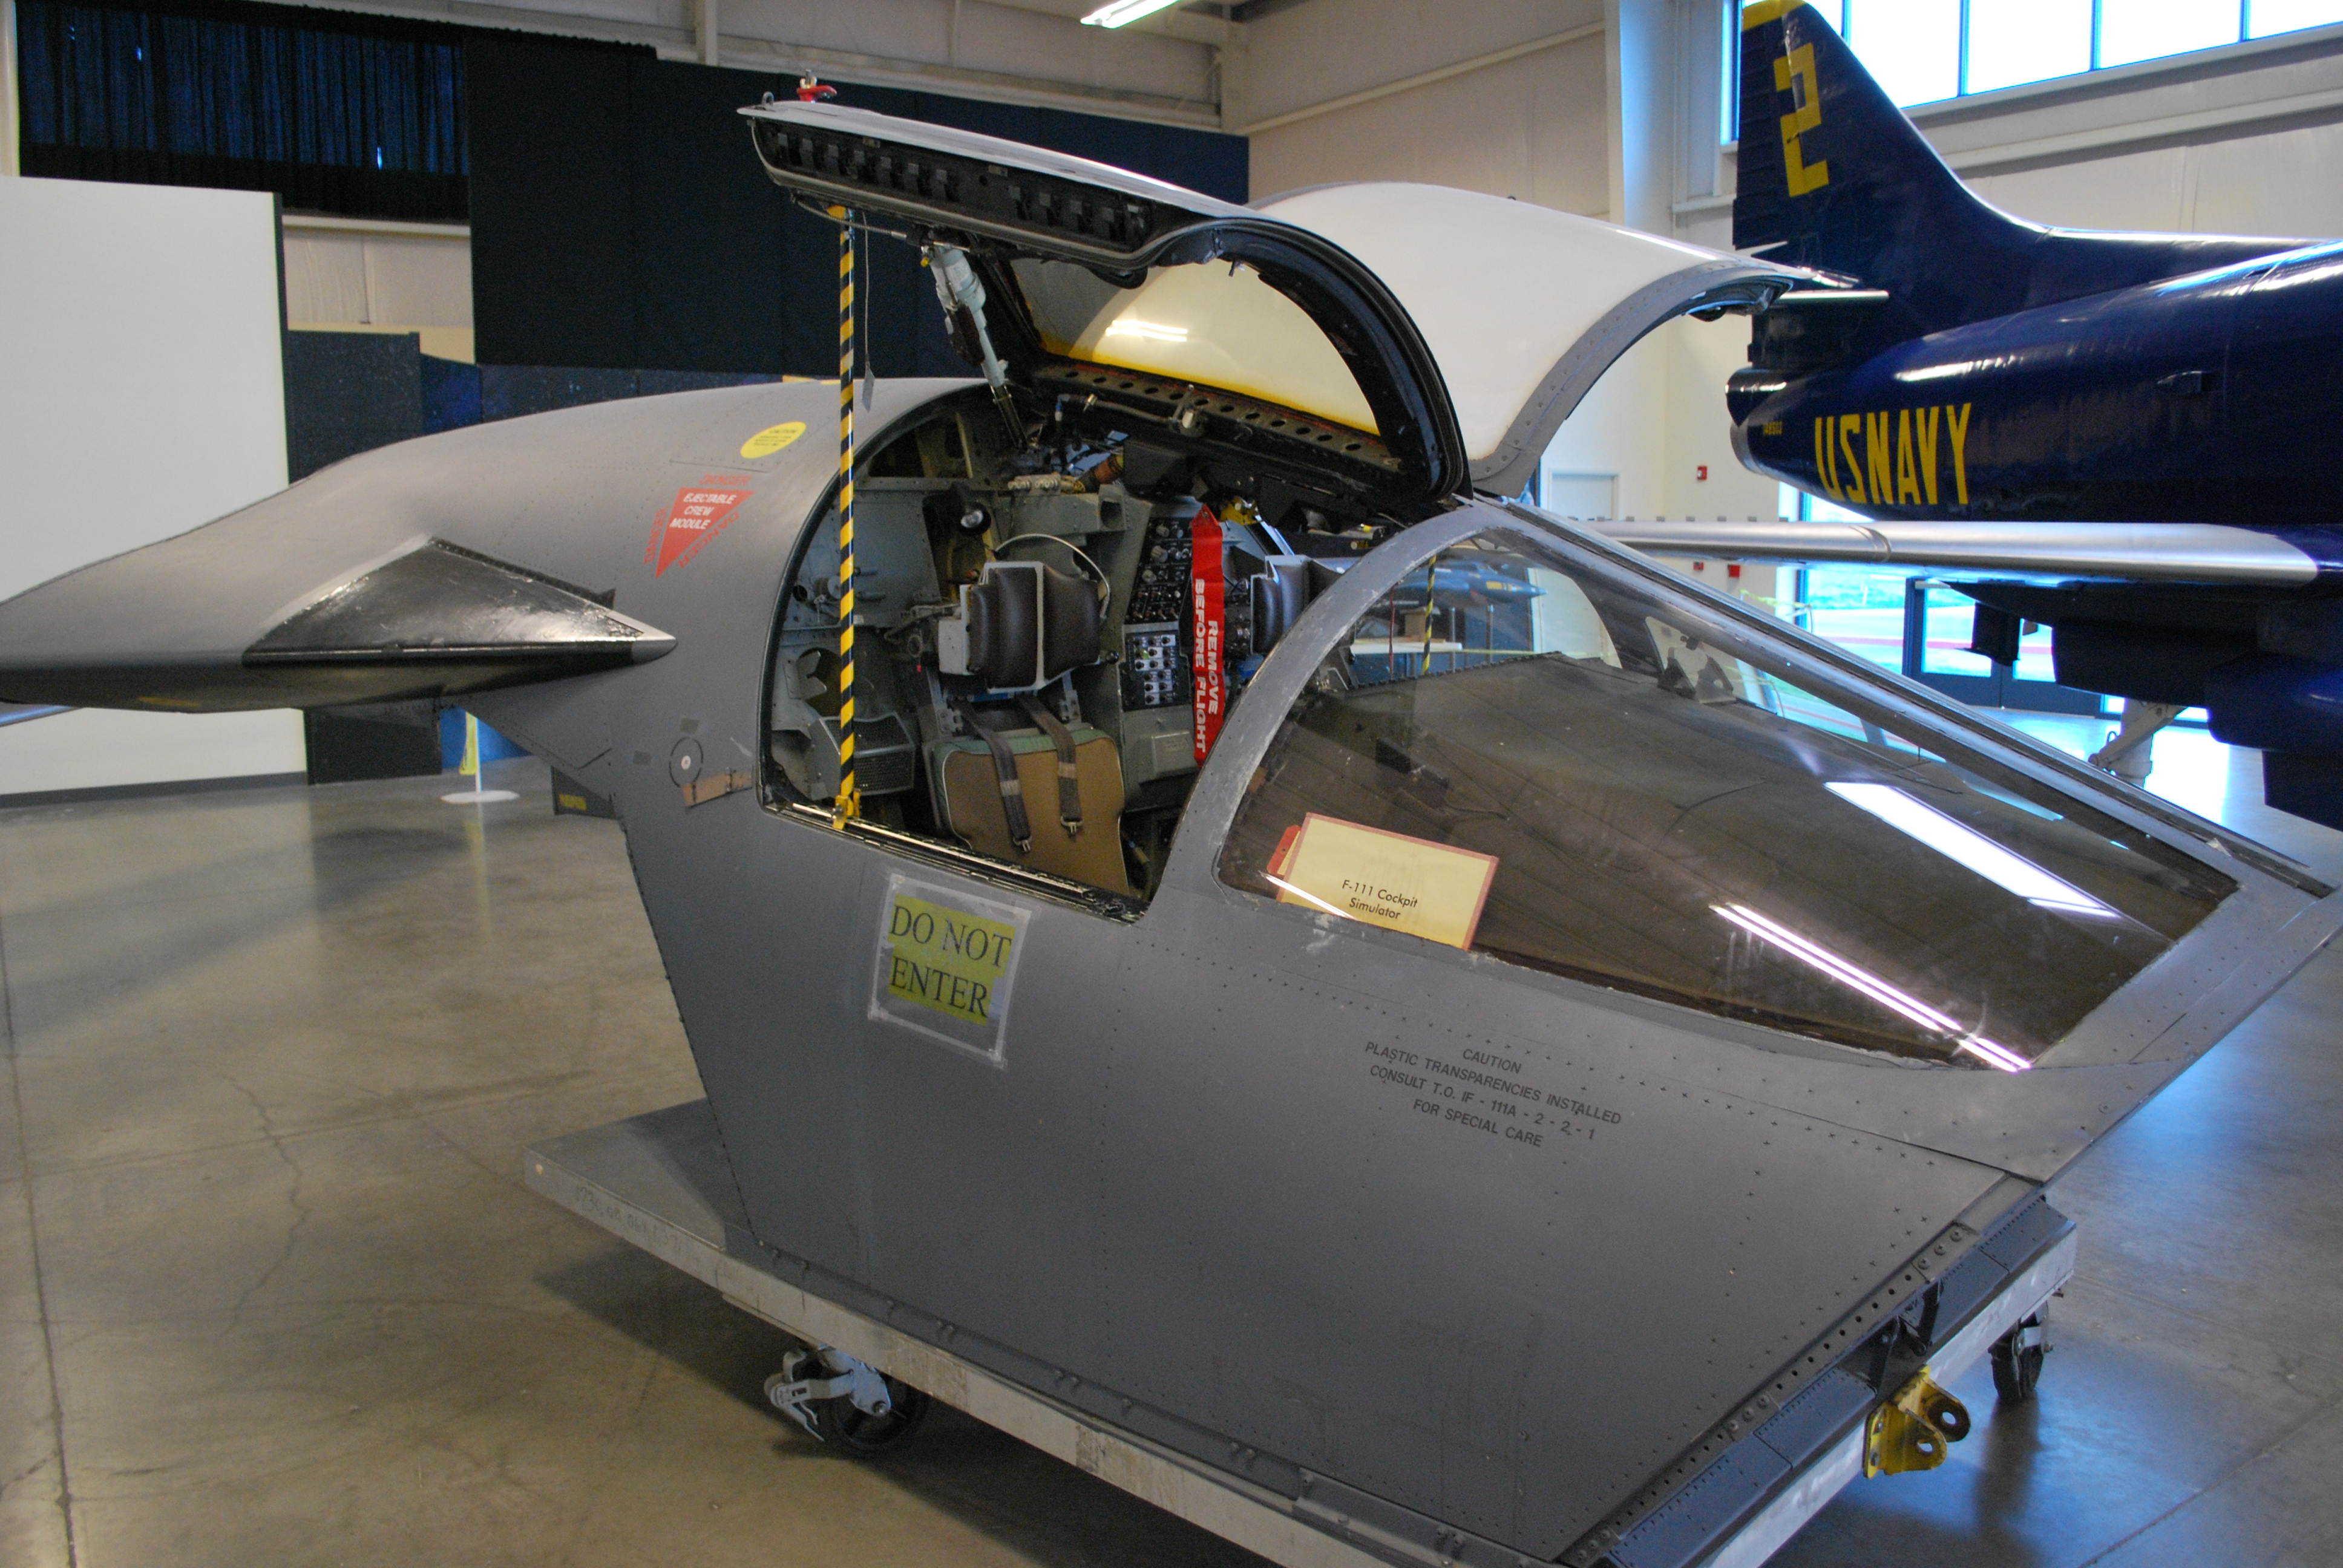 File:F-111 cockpit similuator.jpg - Wikimedia Commons